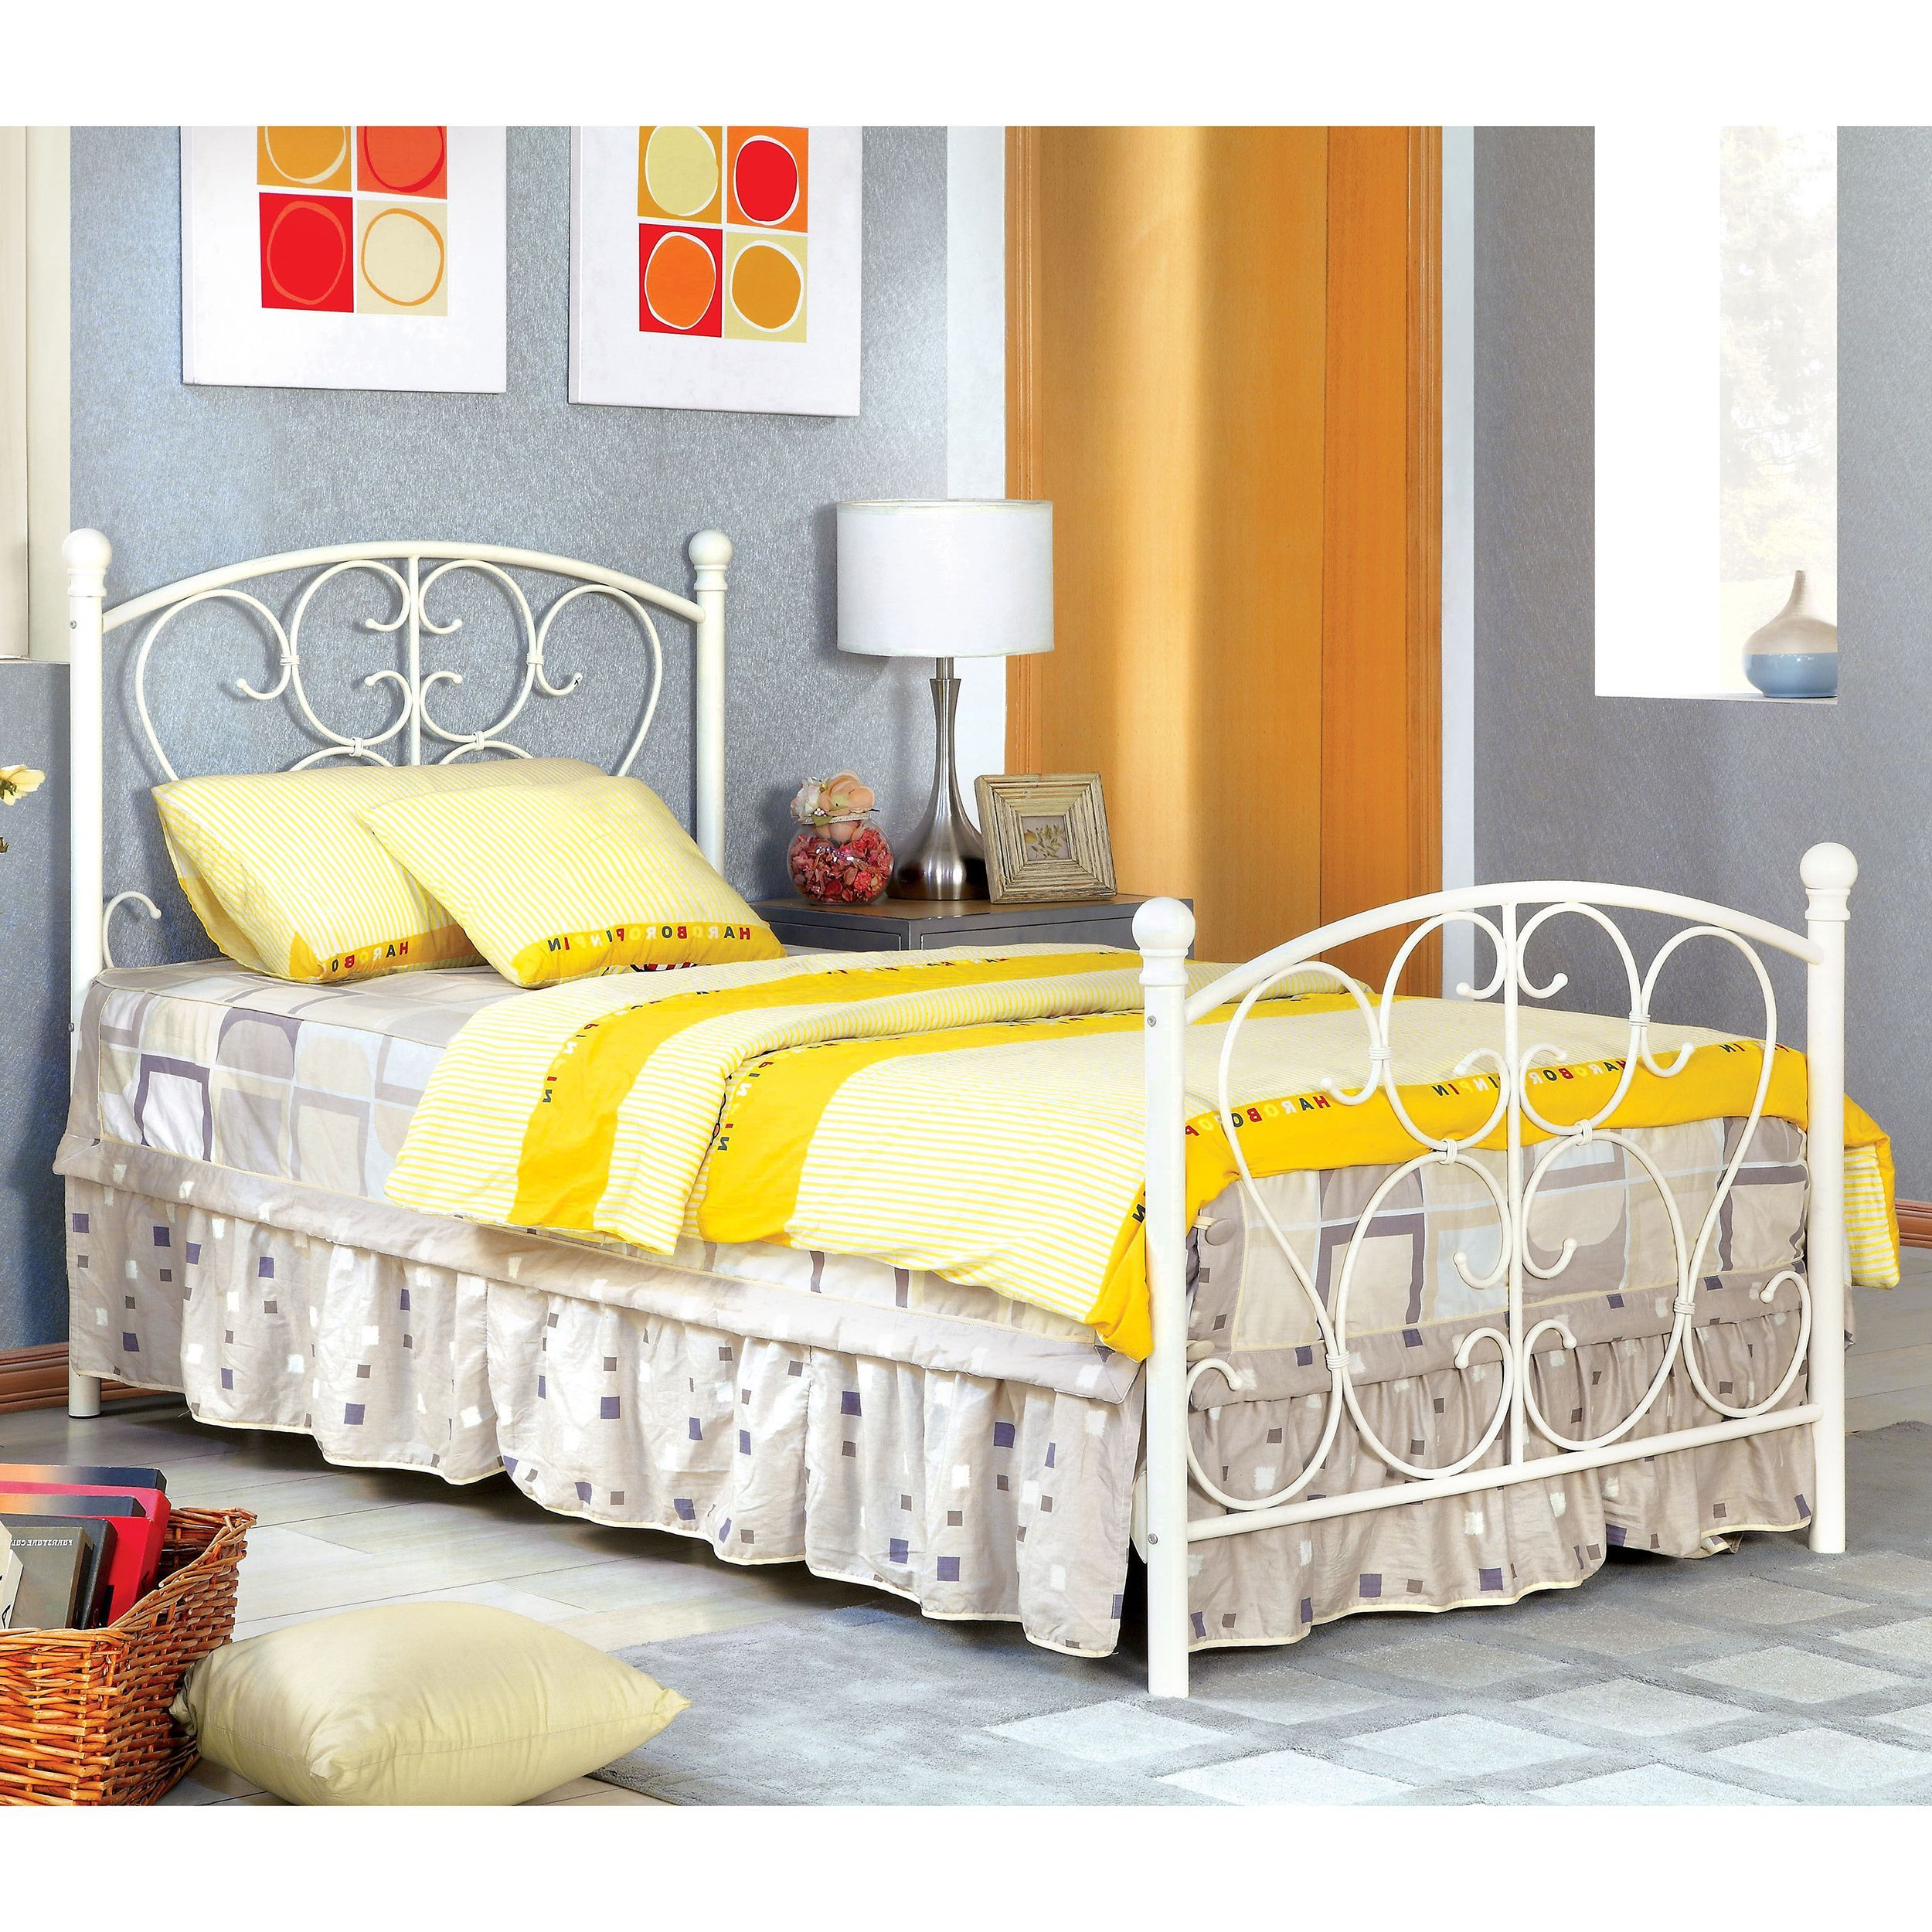 Charmingly Youthful This Princess Style Twin Bed Offers Swirls Of Fun The Metal Construction